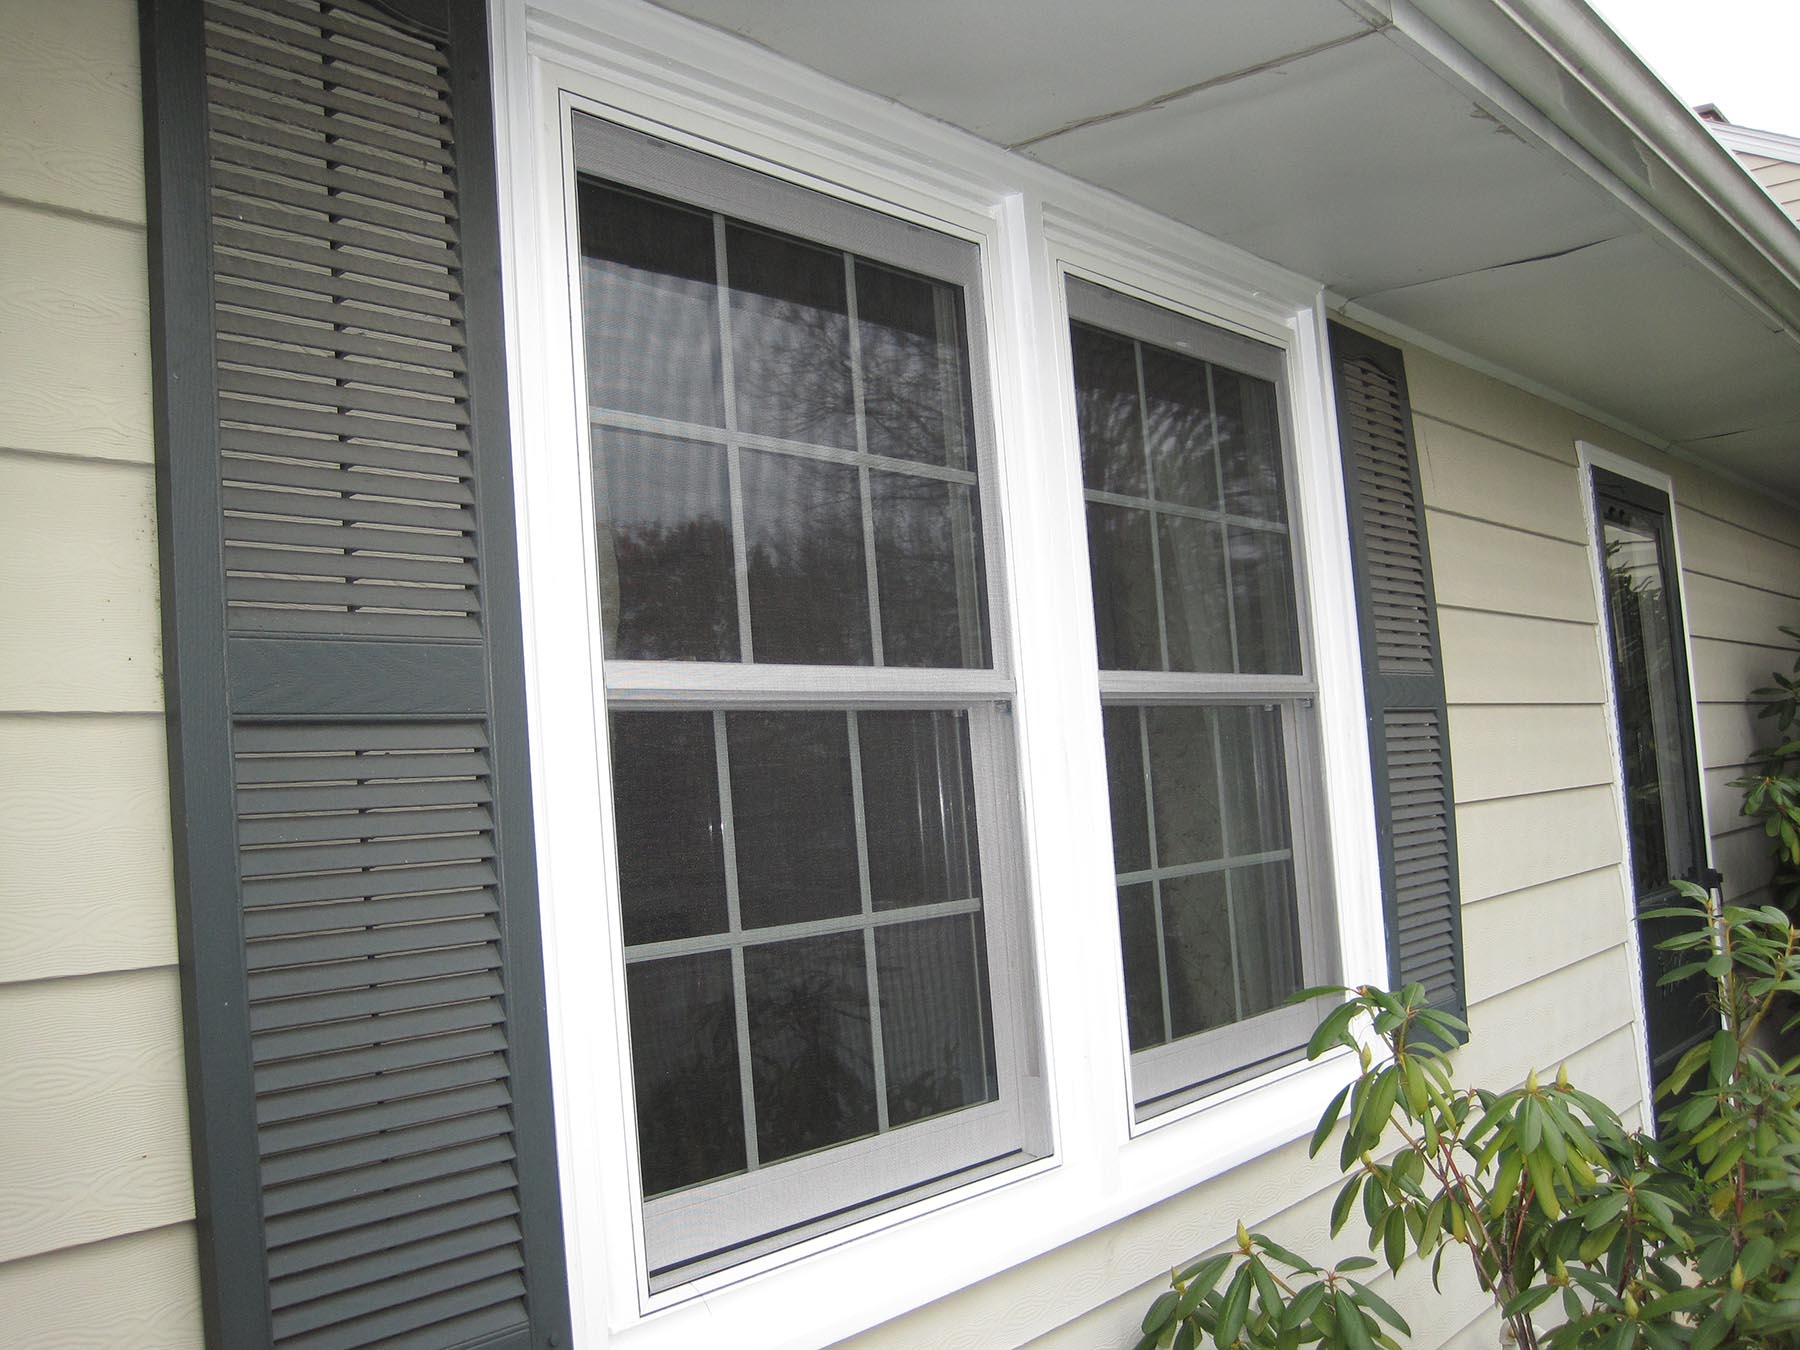 window replacement company Indianapolis - Richmond Exteriors